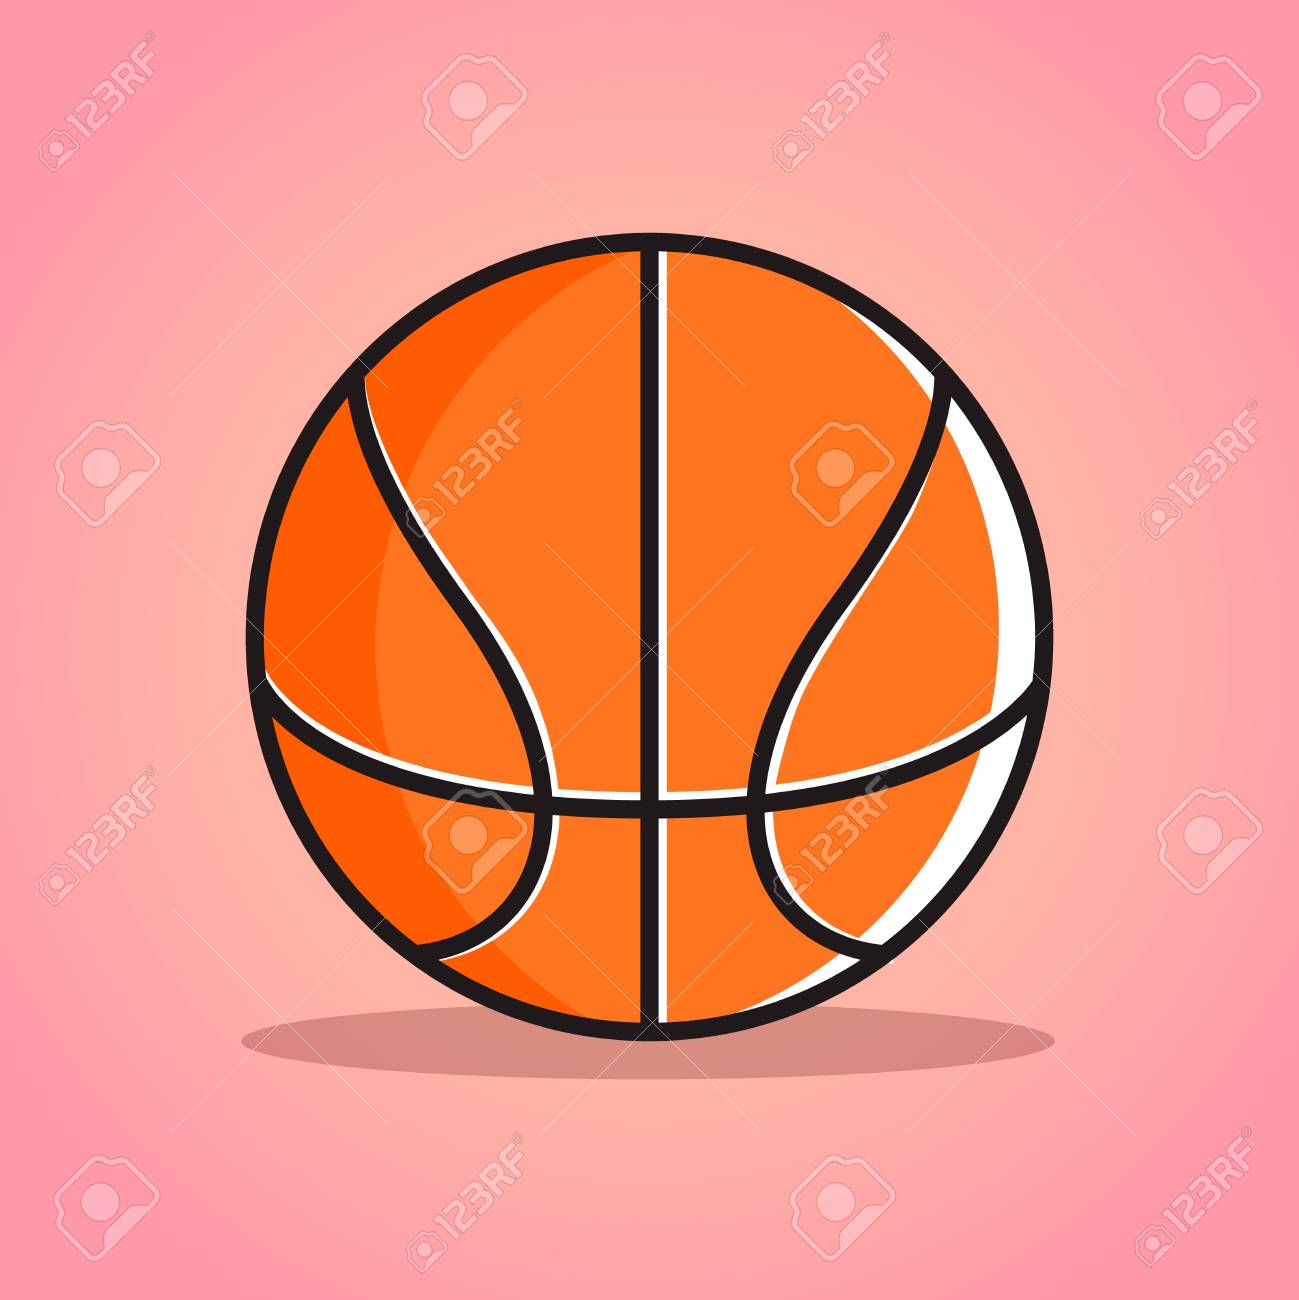 Basketball Ball Cartoon Basketball Ball Vector